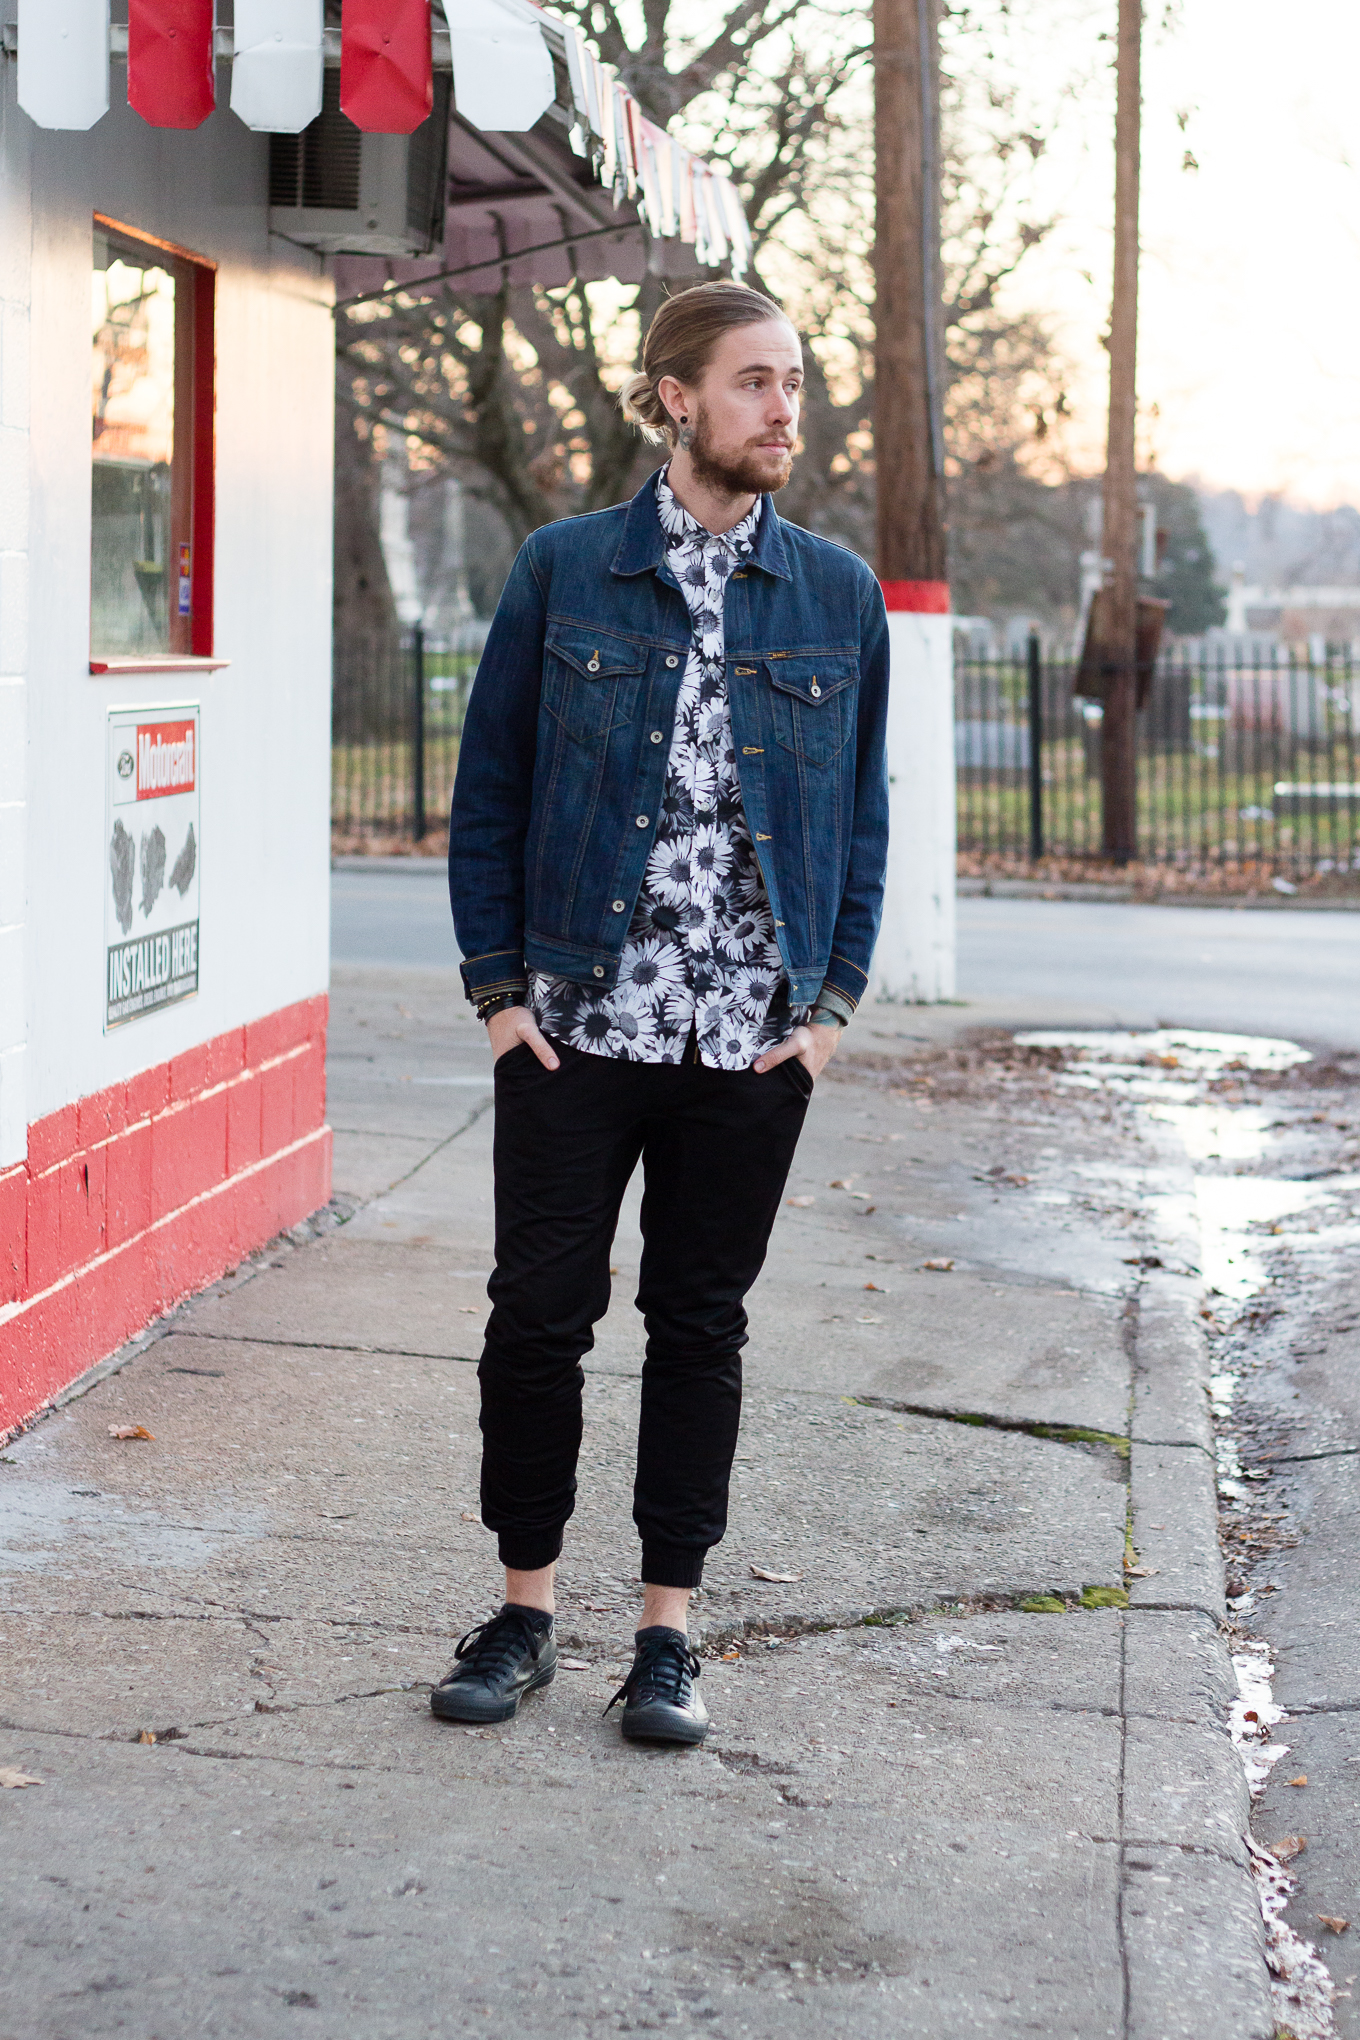 The Kentucky Gent, a Louisville, Kentucky based men's fashion and lifestyle blogger, shares his Woman Crush Wednesday while wearing Topman, Big Star, and Converse.